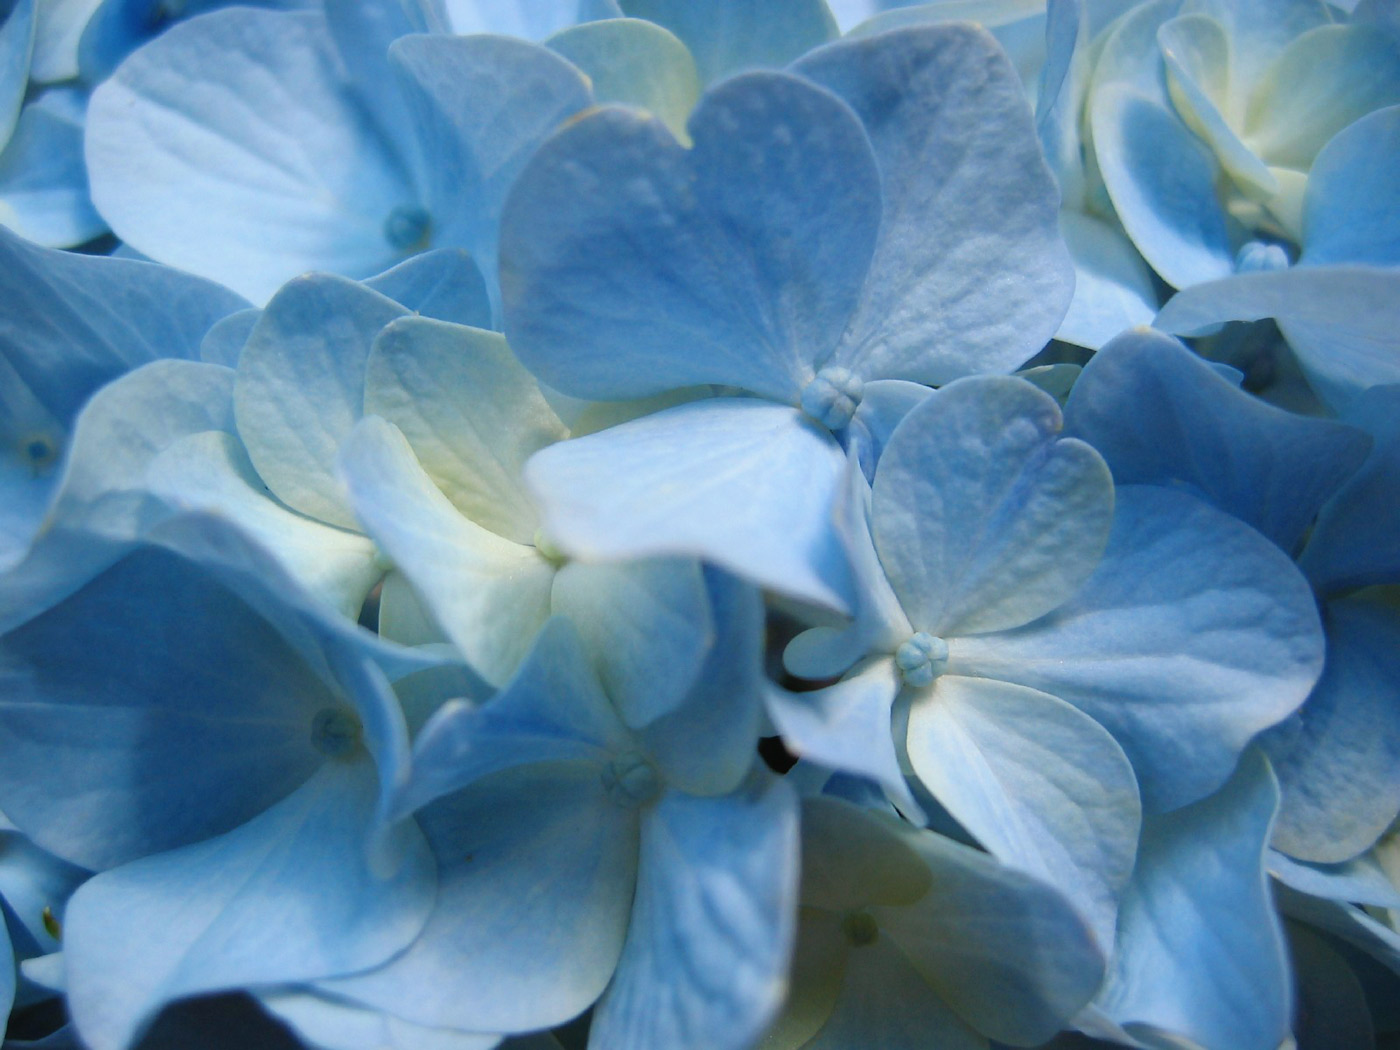 blue flowers wallpaper blue flowers wallpaper blue flowers wallpaper